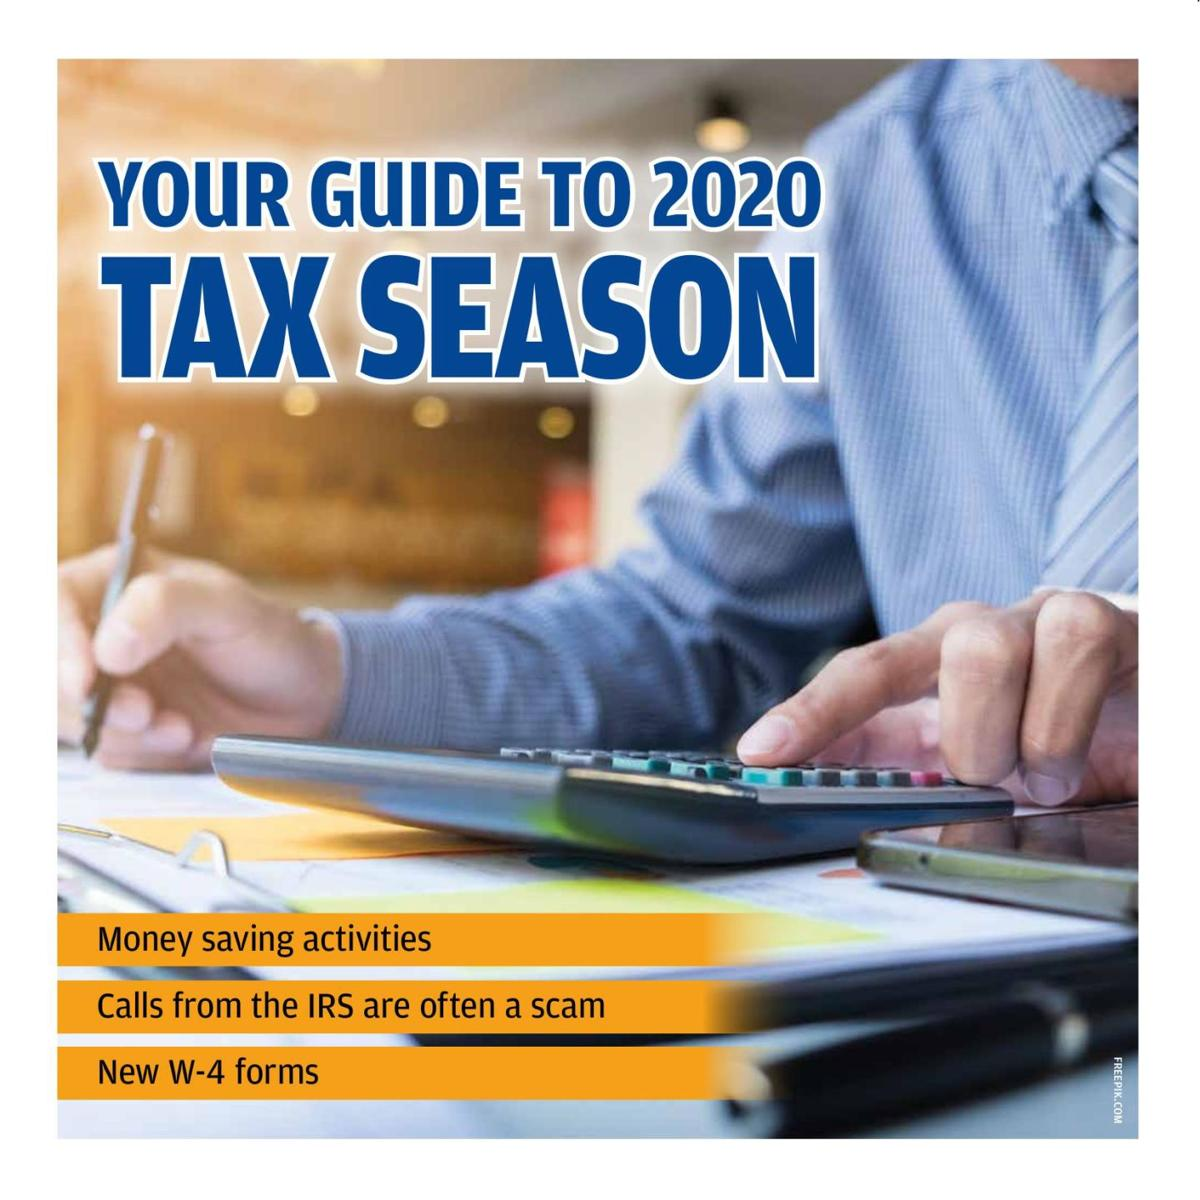 Your guide to the 2020 tax season